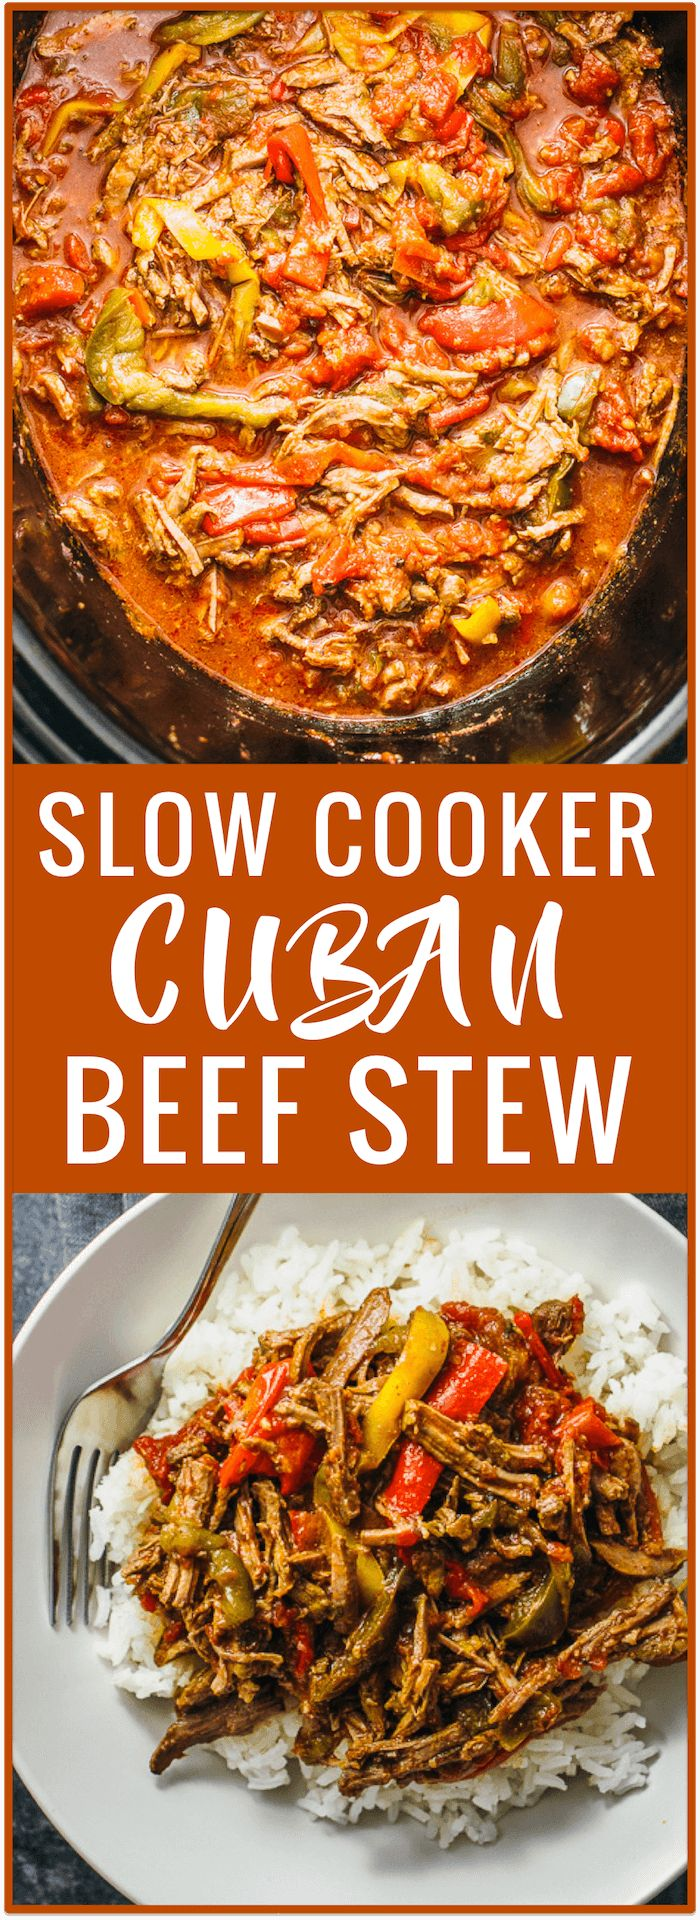 Ropa vieja slow cooker recipe: a comforting Cuban beef stew consisting of shredded beef, colored bell peppers, mild spices, and a tomato sauce. via @savory_tooth